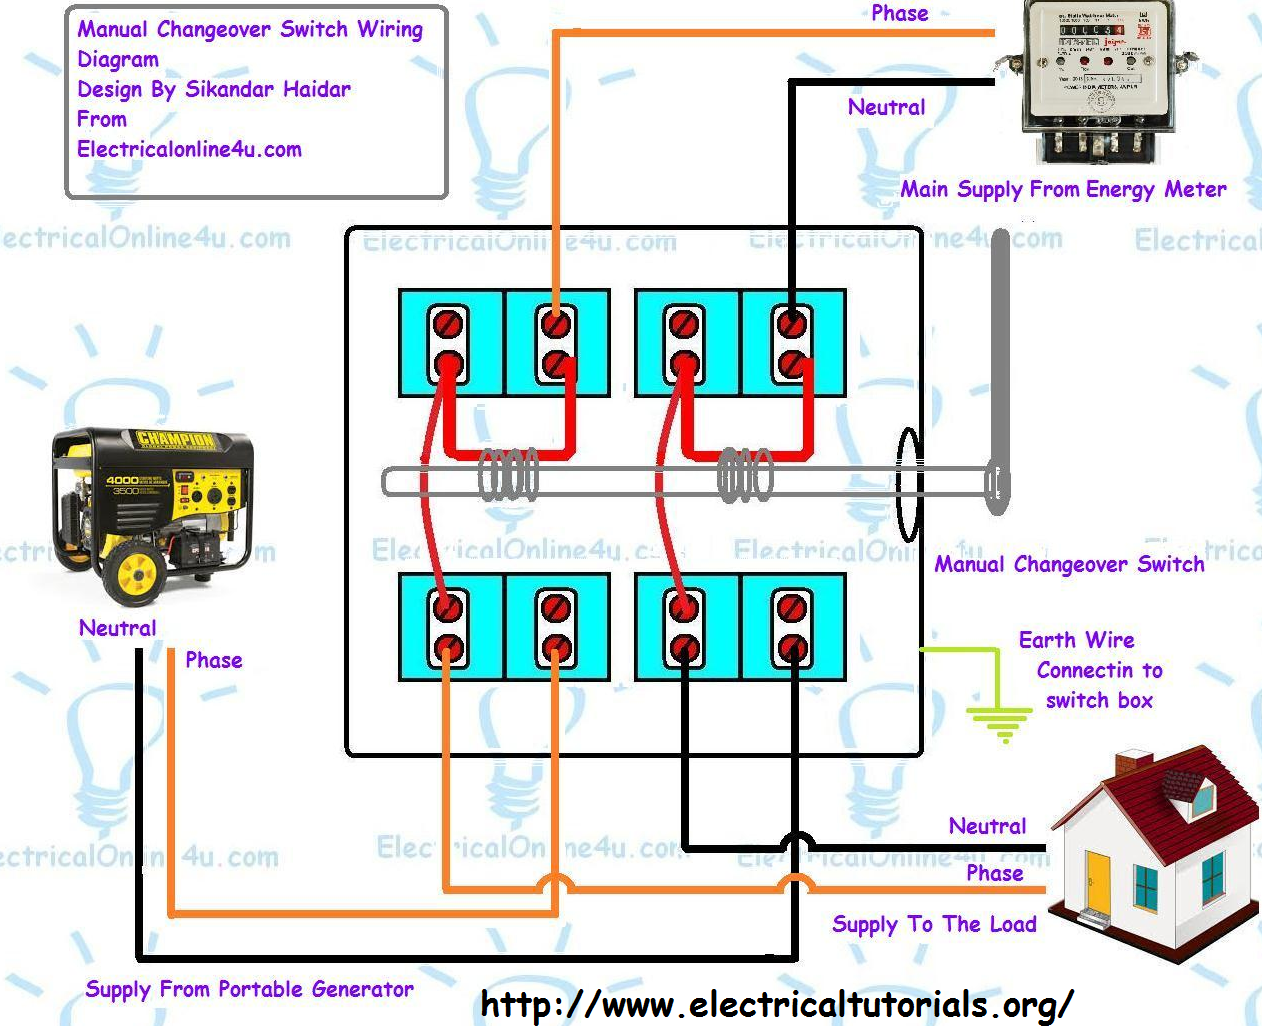 Portable Generator Changeover Switch Wiring Diagram | Electrical ...